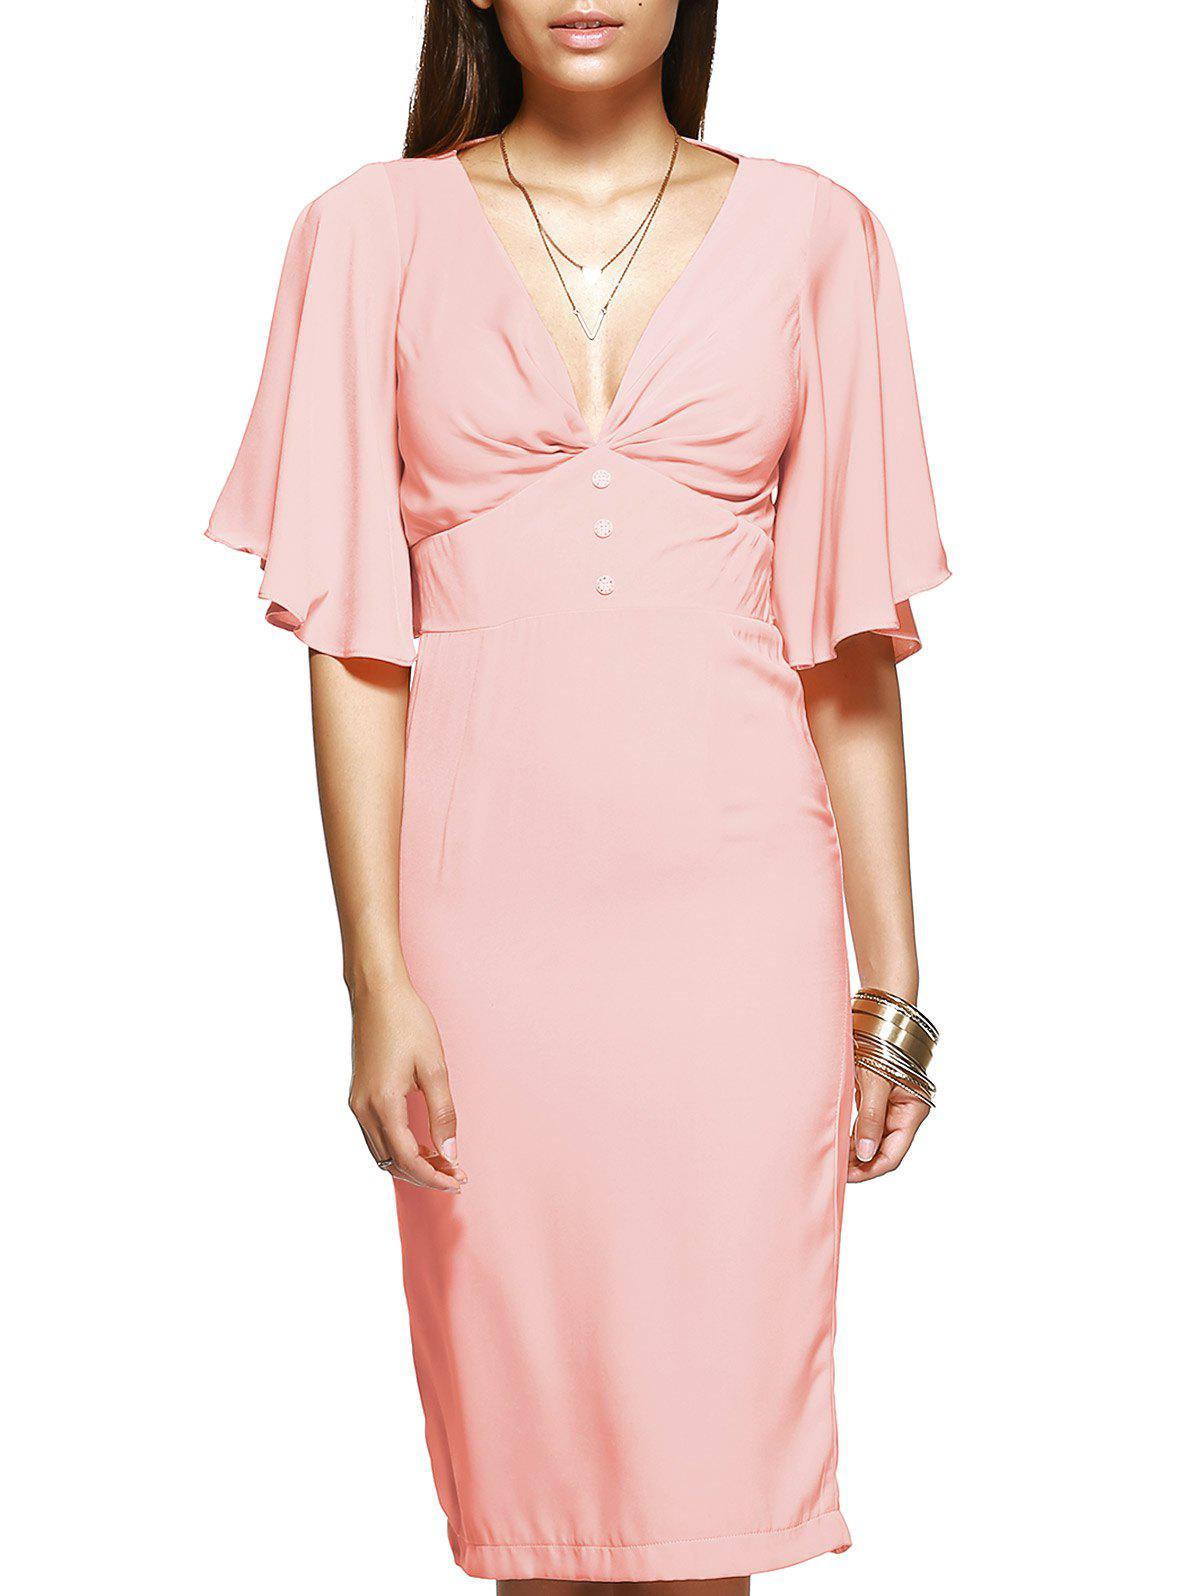 Elegant Women's Pink Flounced Sleeves Open Back Dress